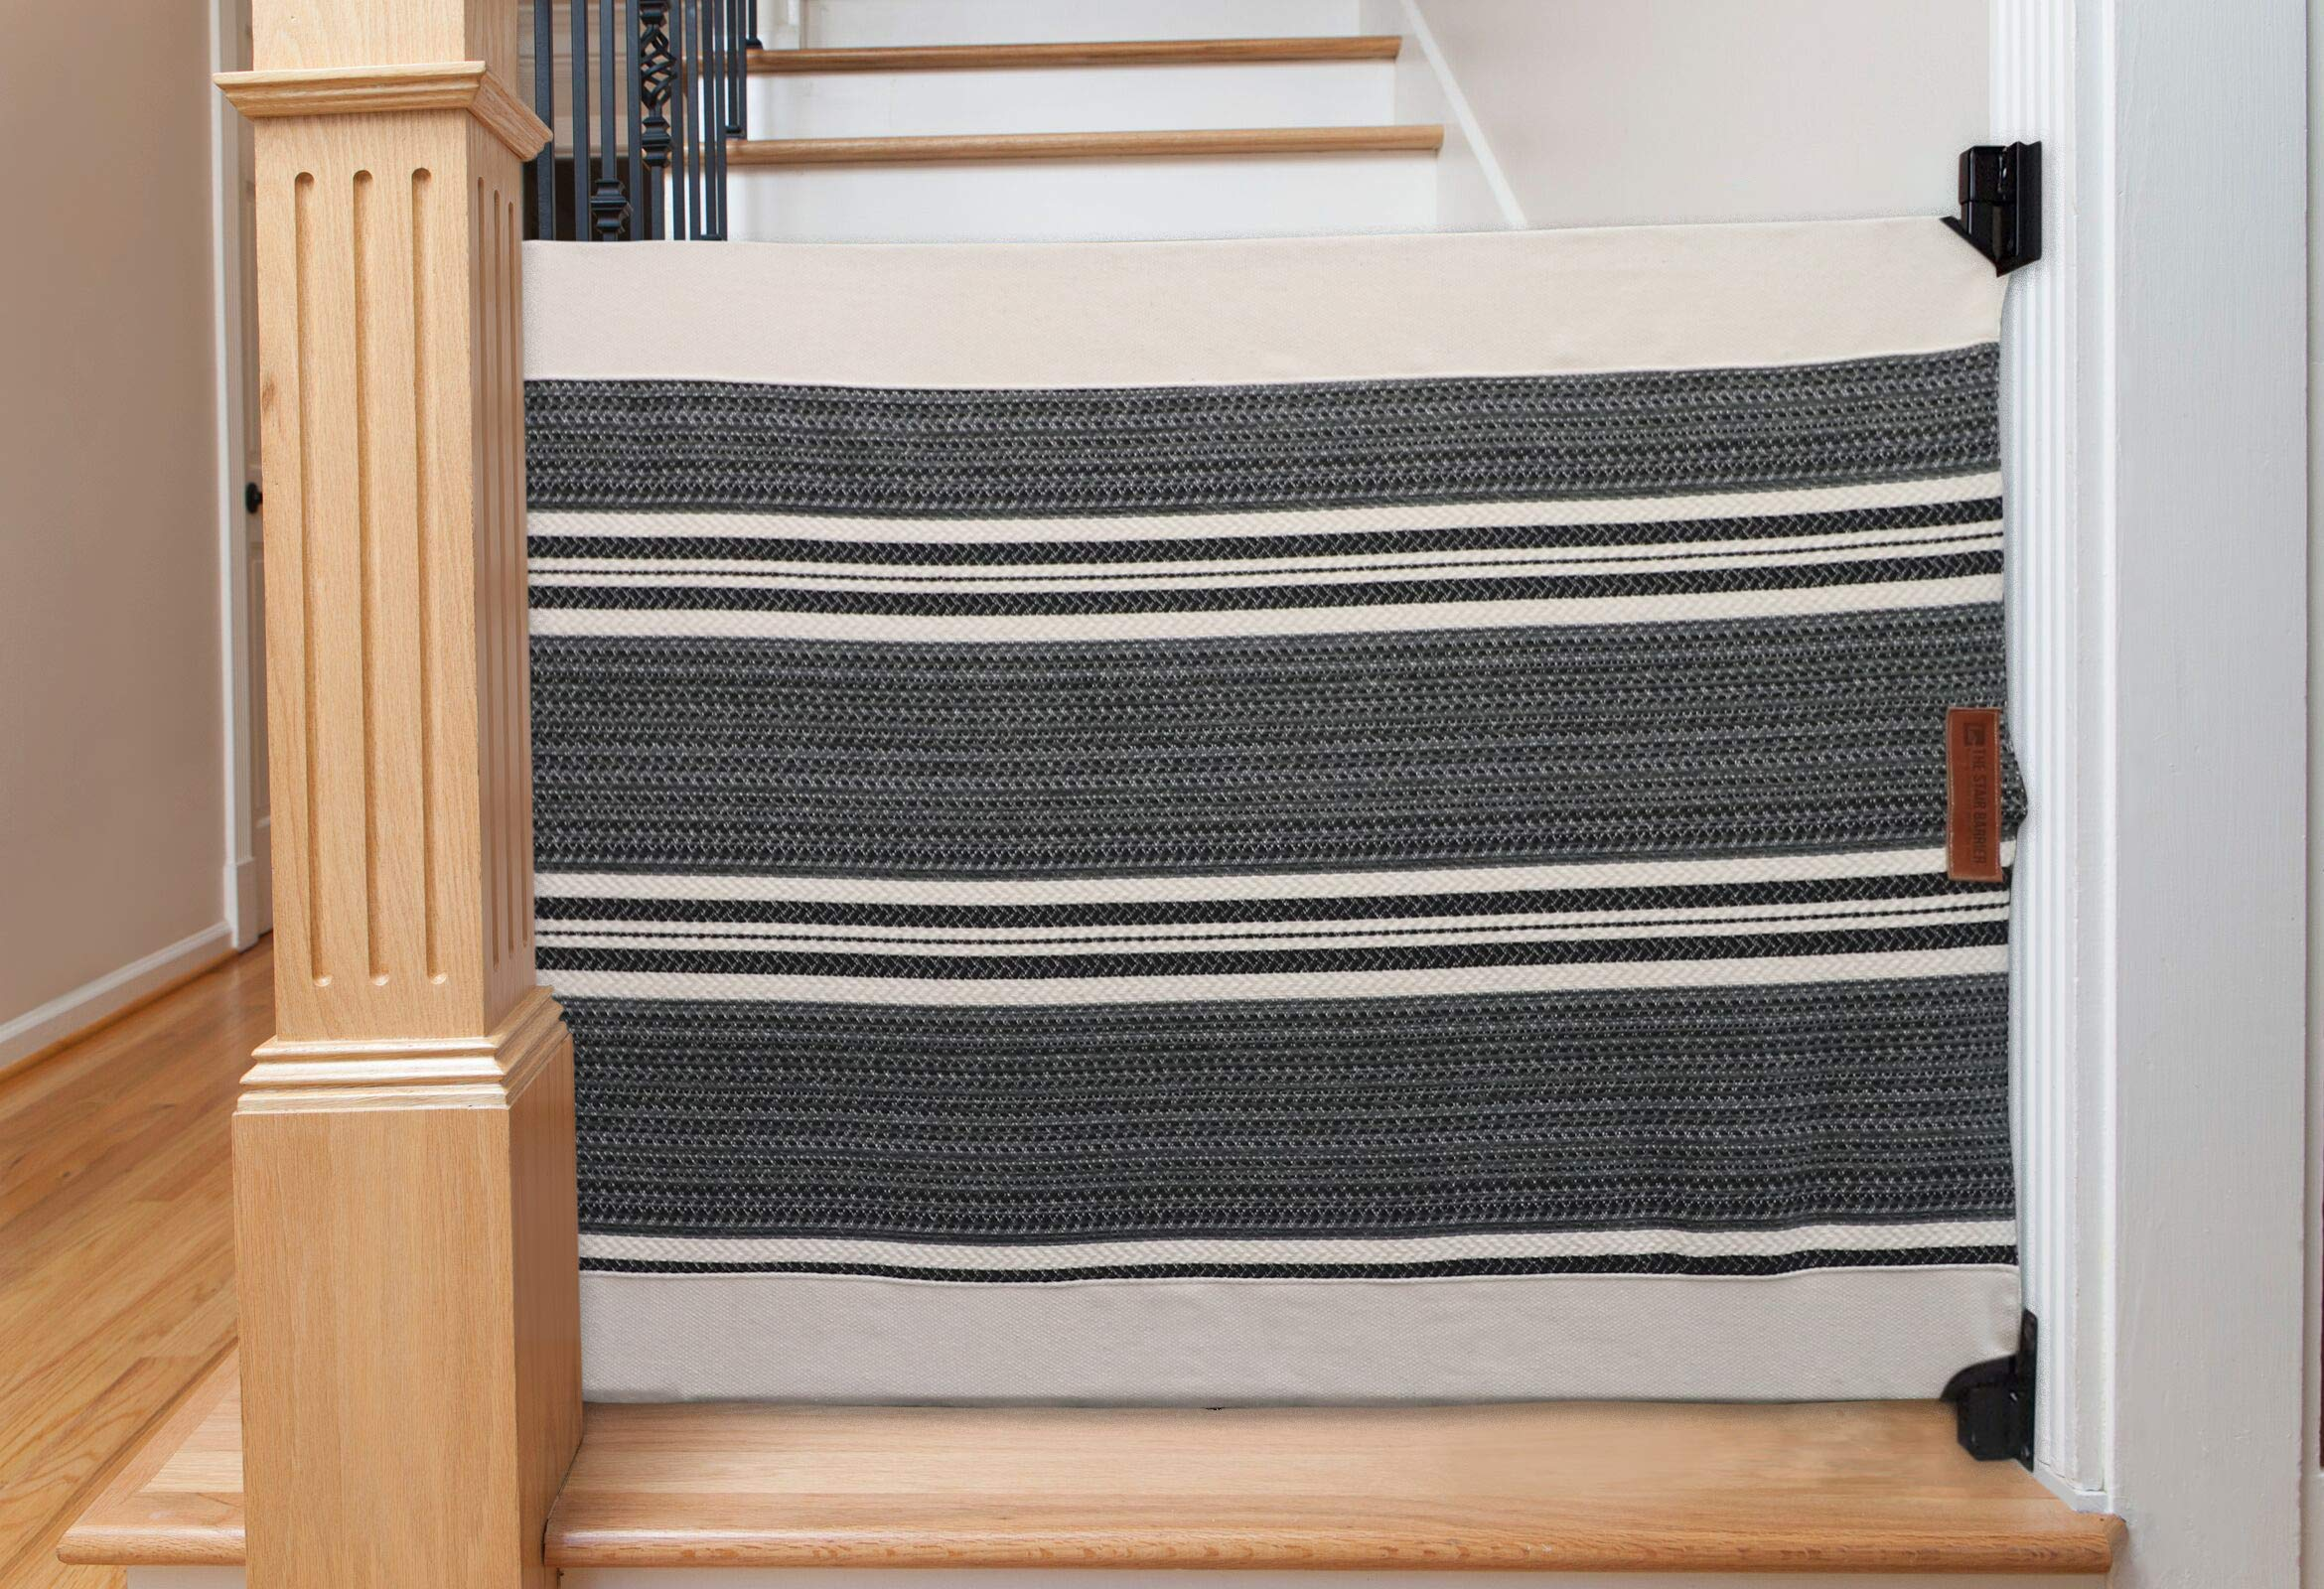 The Stair Barrier Baby And Pet Gate Banister To Wall Baby Gate Safety Gates For Kids Or Dogs Fabric Baby Gate For Buy Online In Aruba At Aruba Desertcart Com Productid 129693093